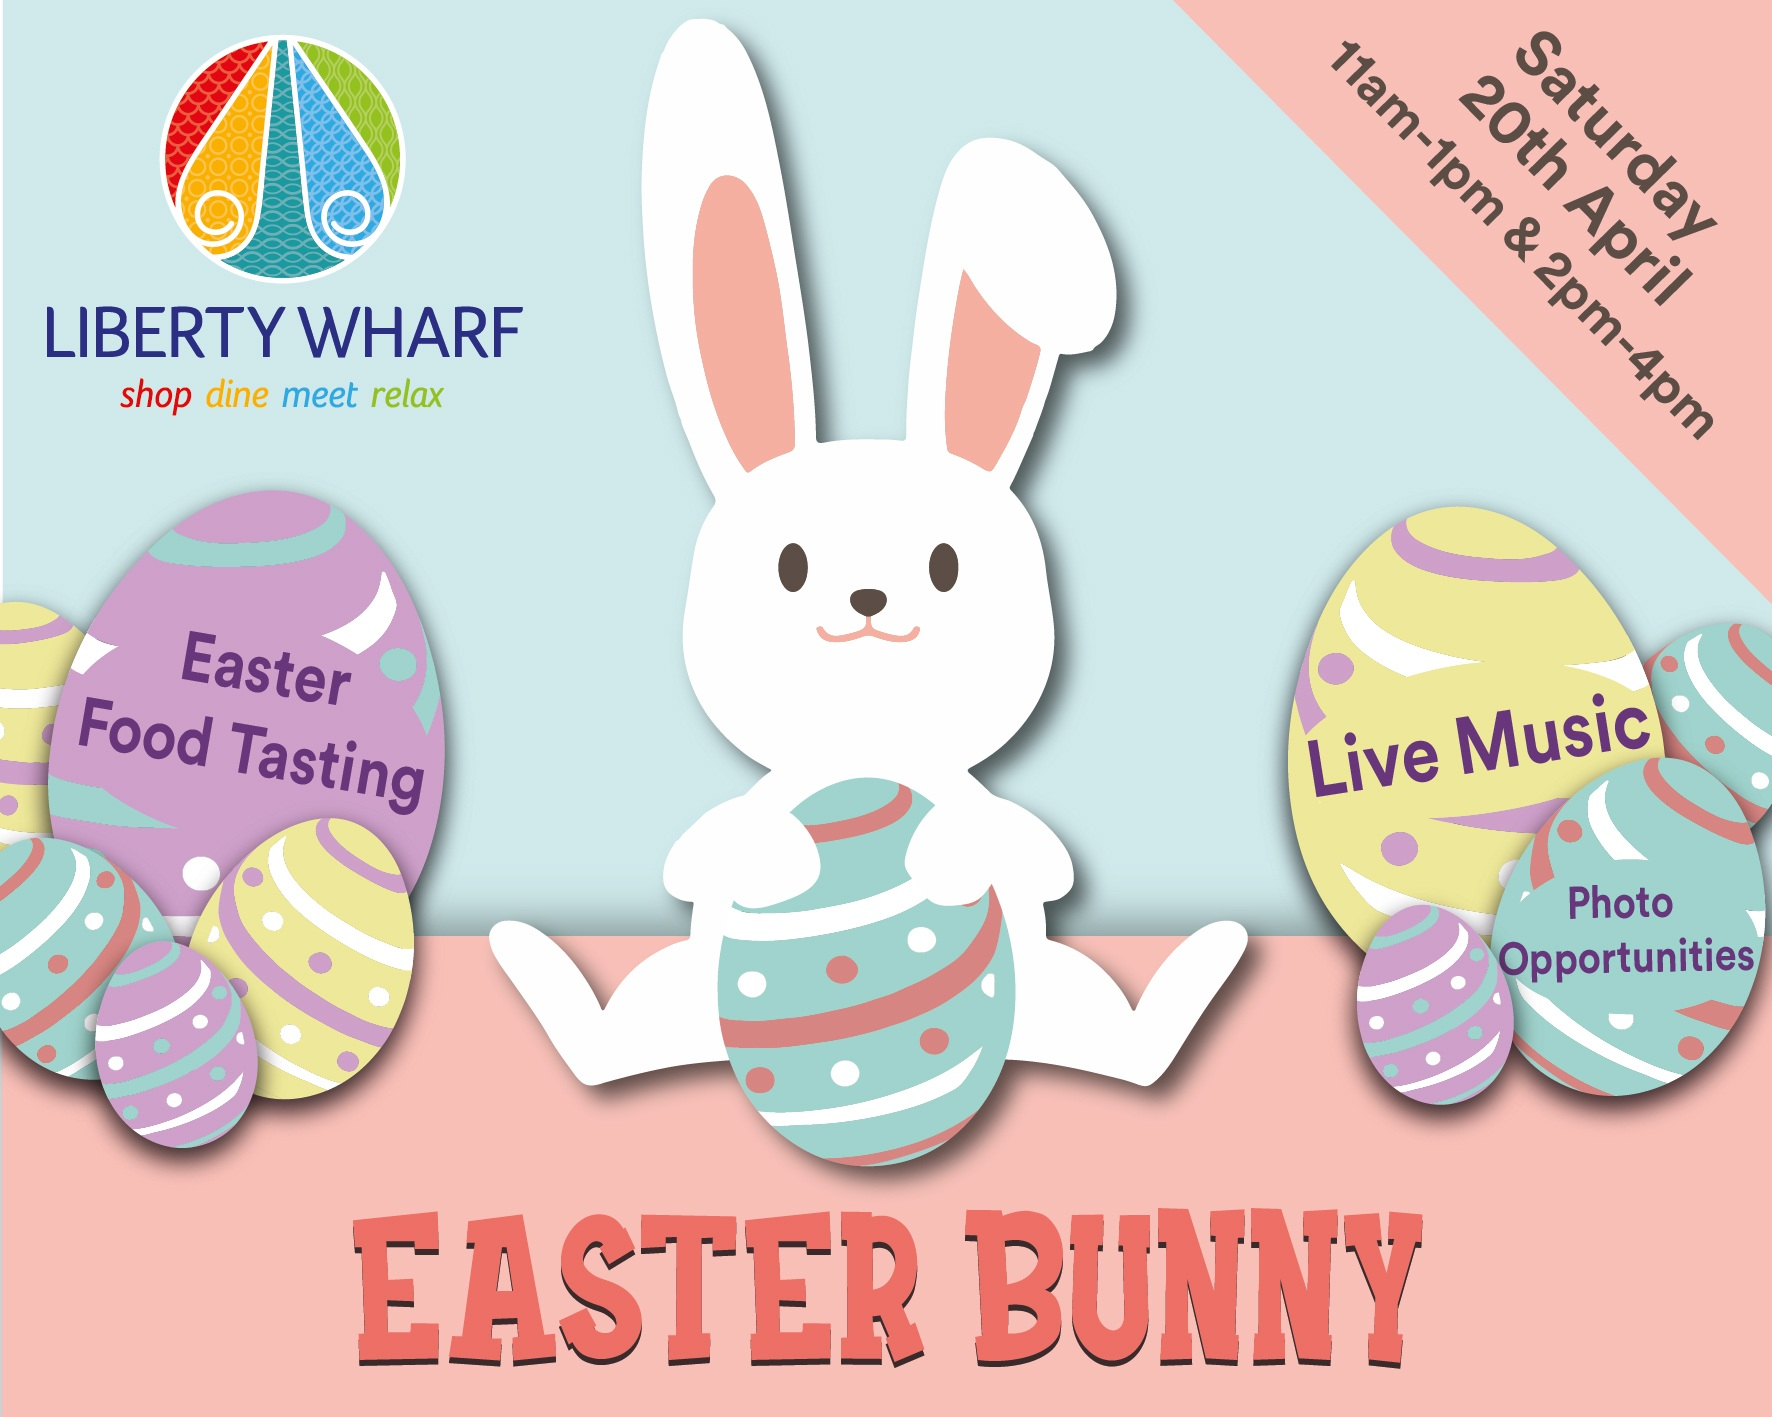 Easter Bunny Meet and Greet at Liberty Wharf -